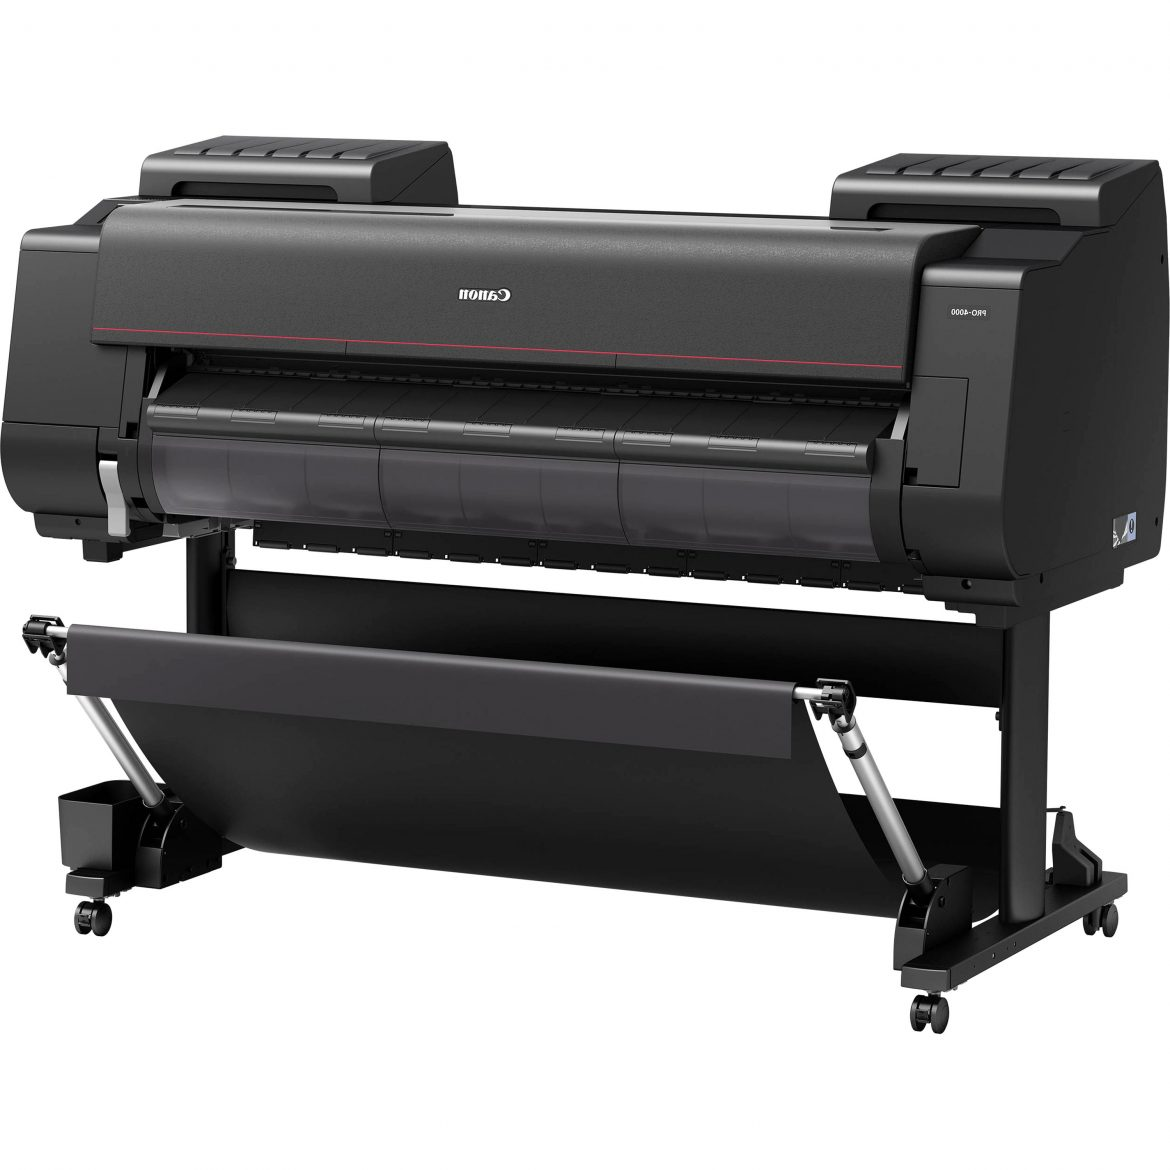 Reasons To Buy Large Format Printers For Sale | Overland Blueprinting